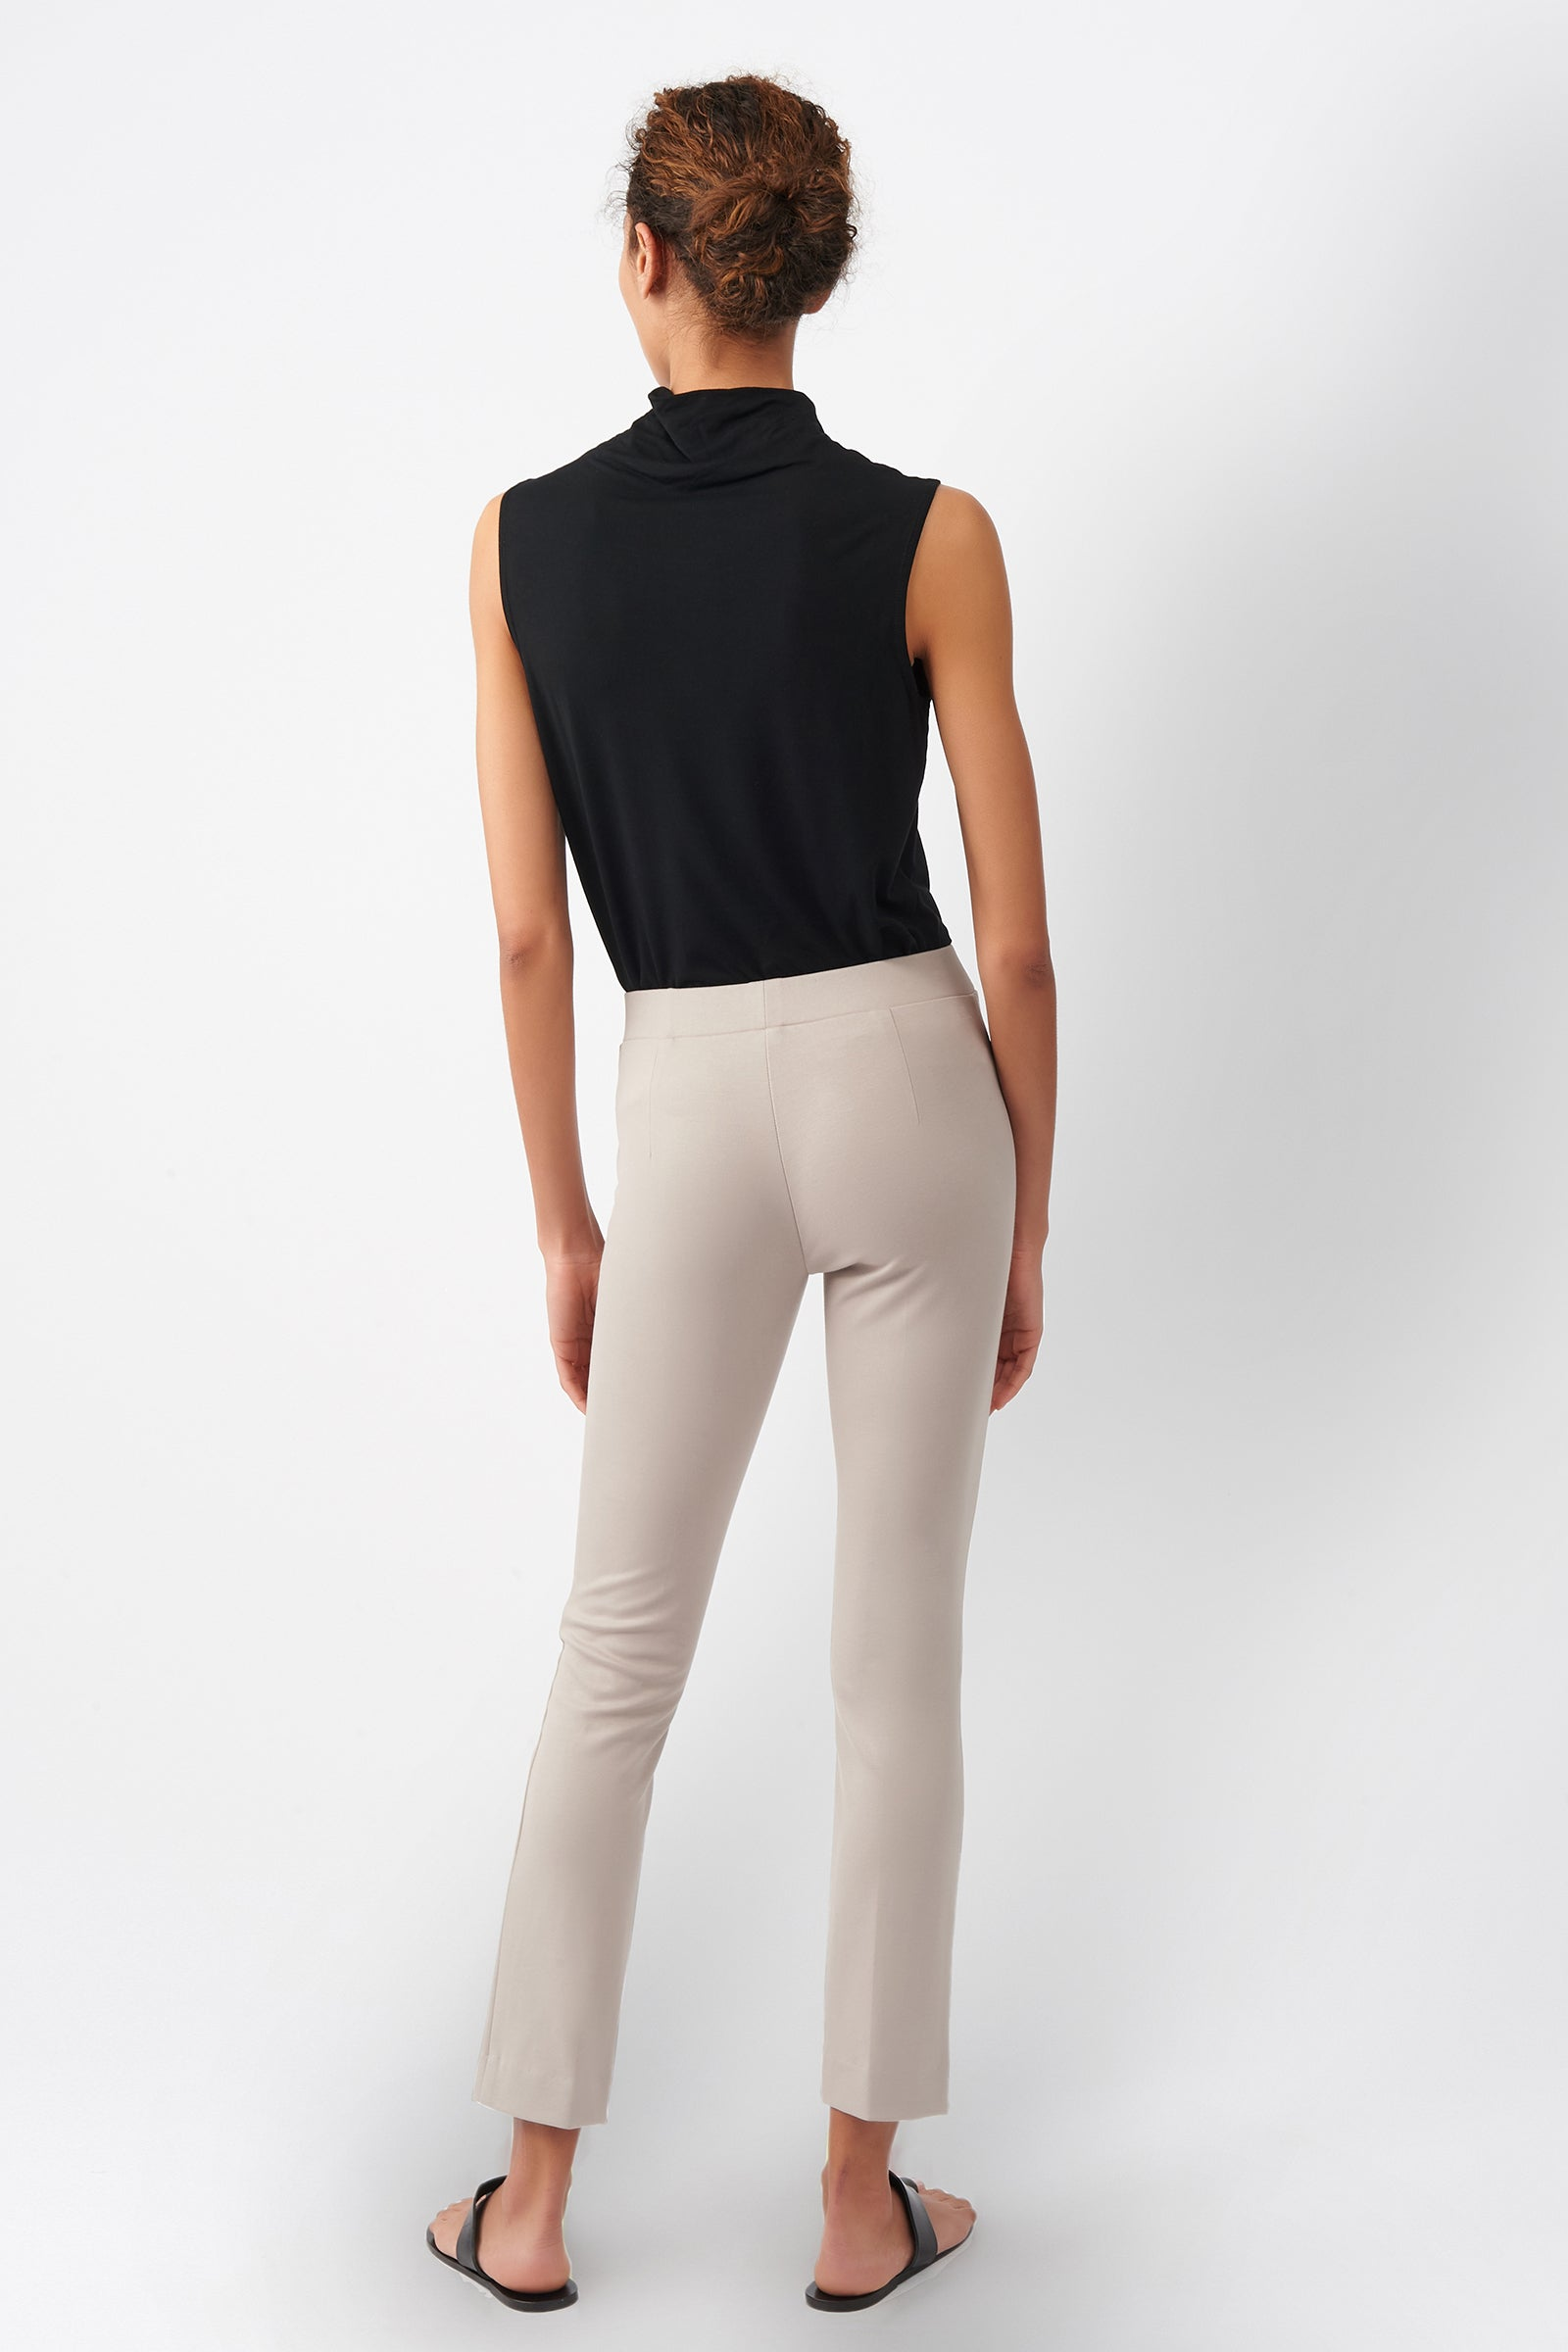 Kal Rieman Pintuck Ponte Ankle Pant in Taupe on Model Back View